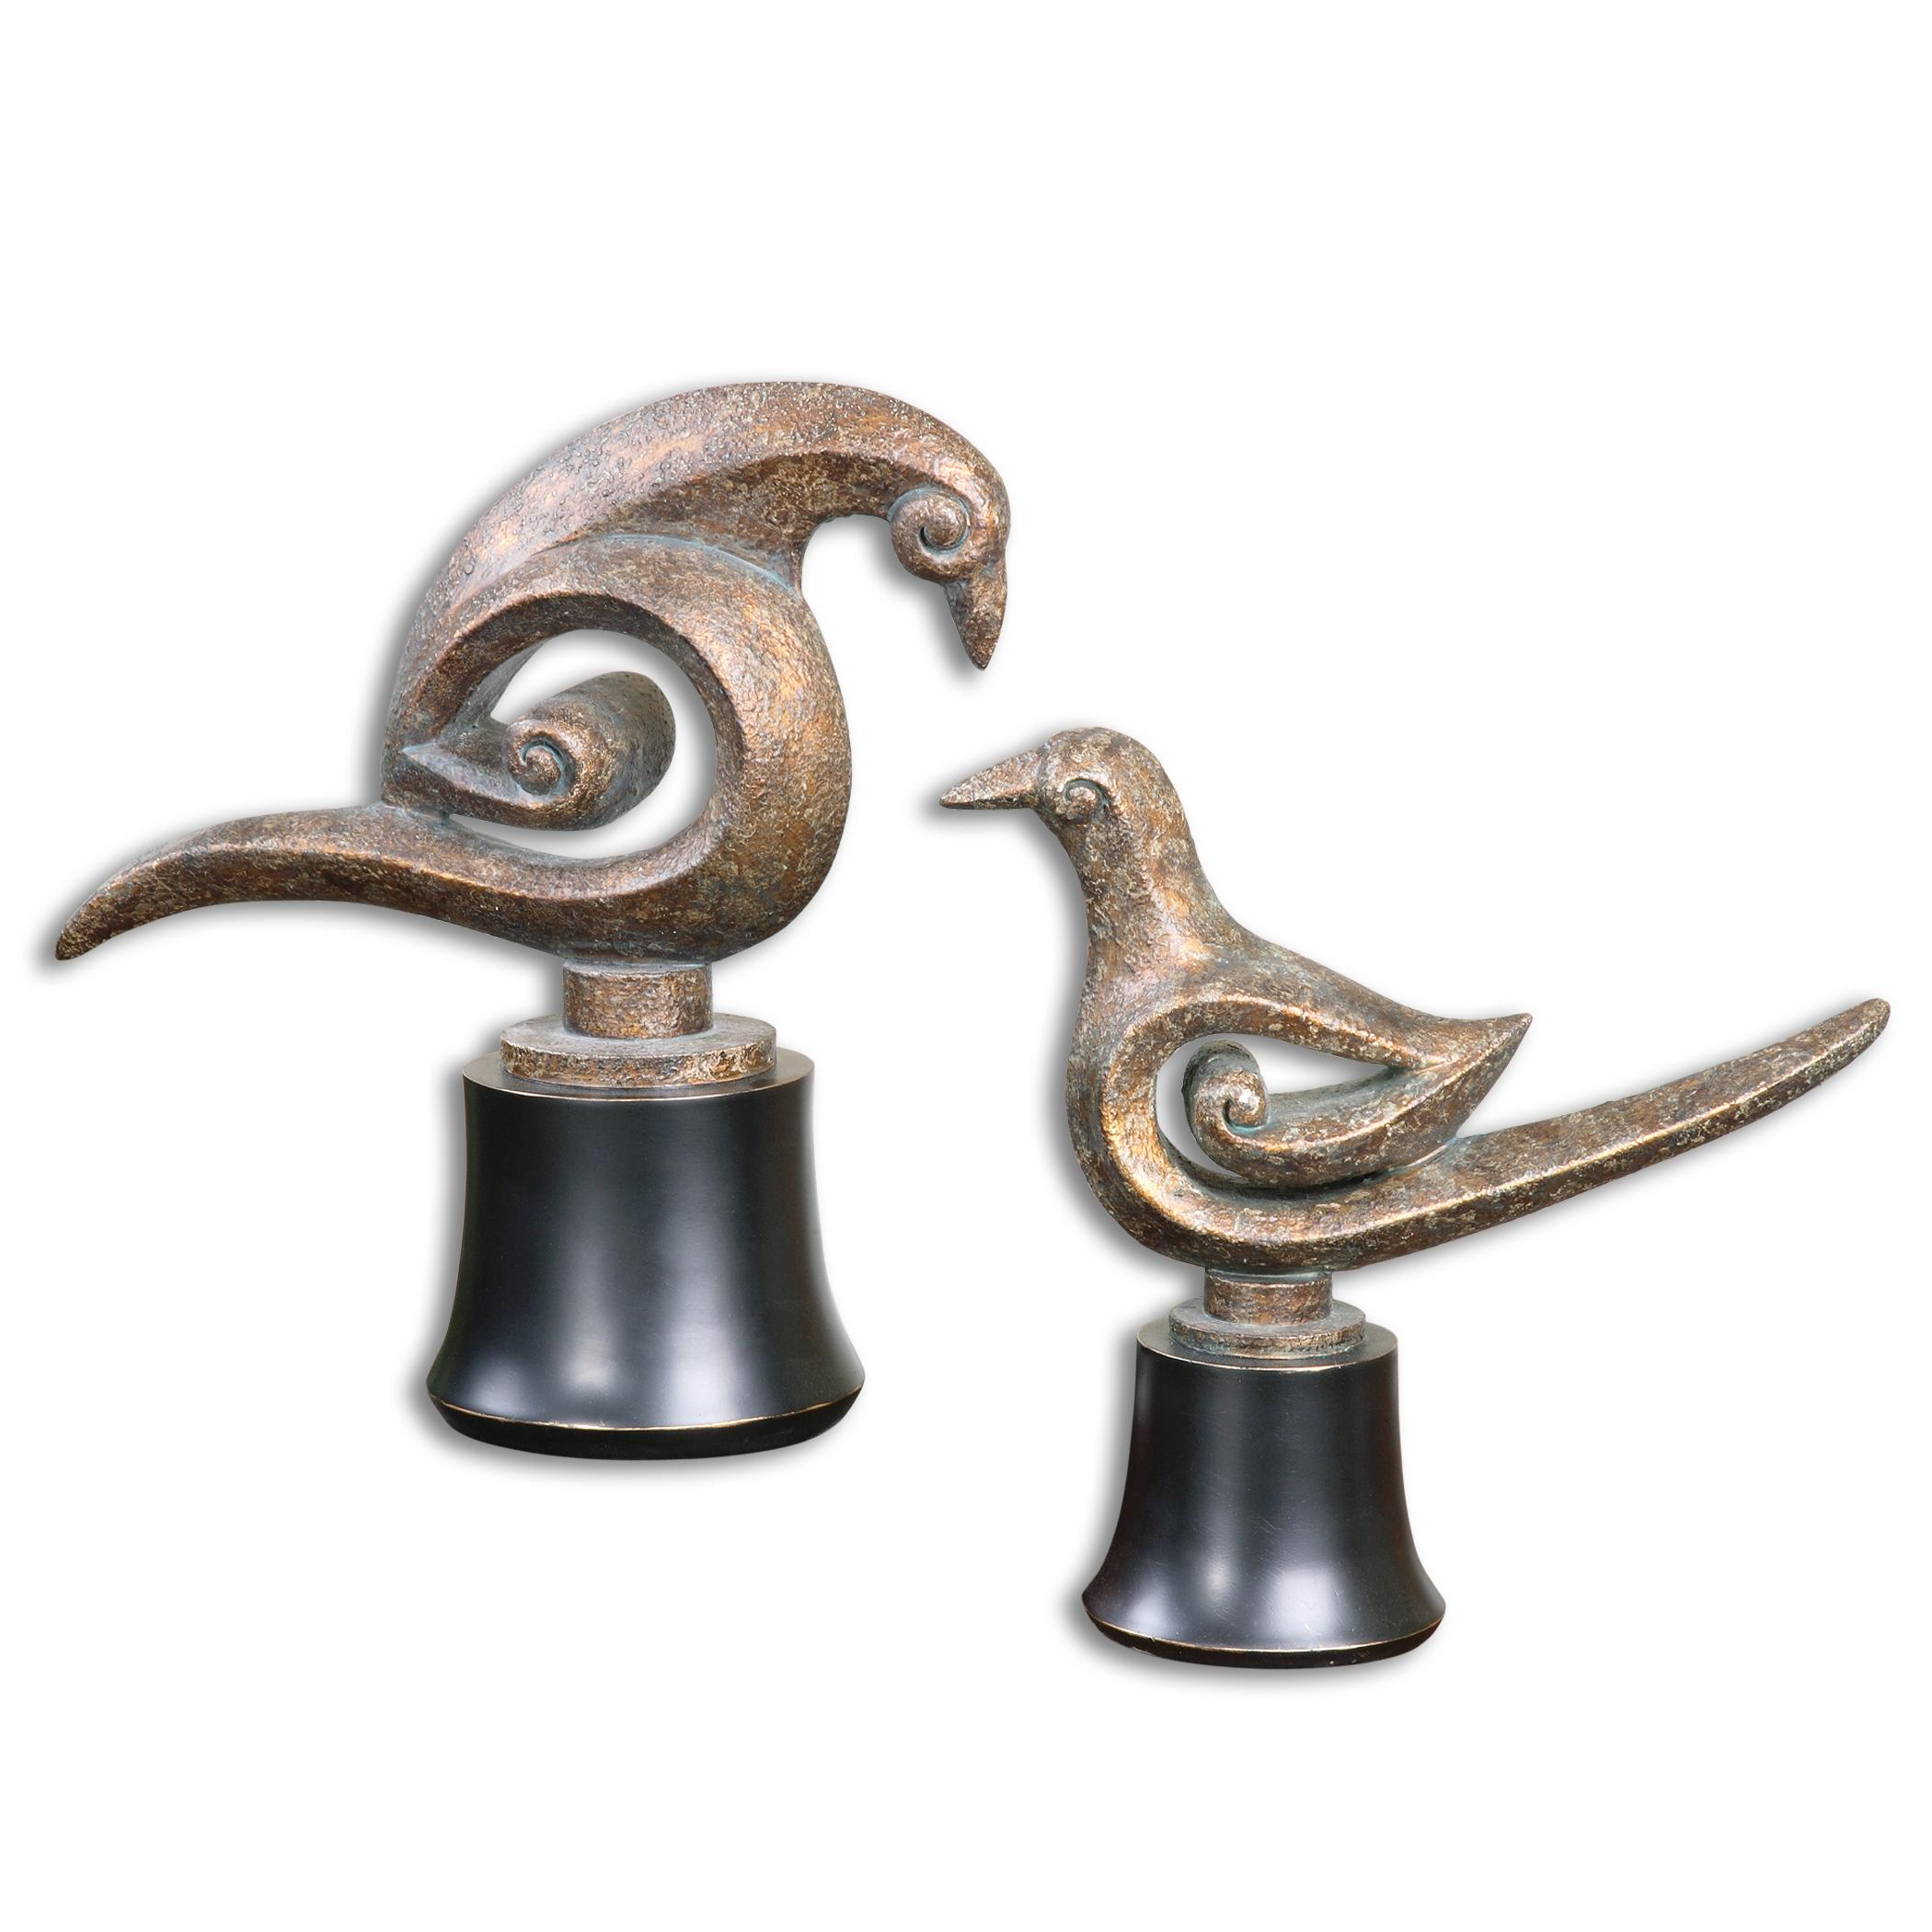 Uttermost Accessories Aram Bird Sculptures Set of 2 - Item Number: 19876